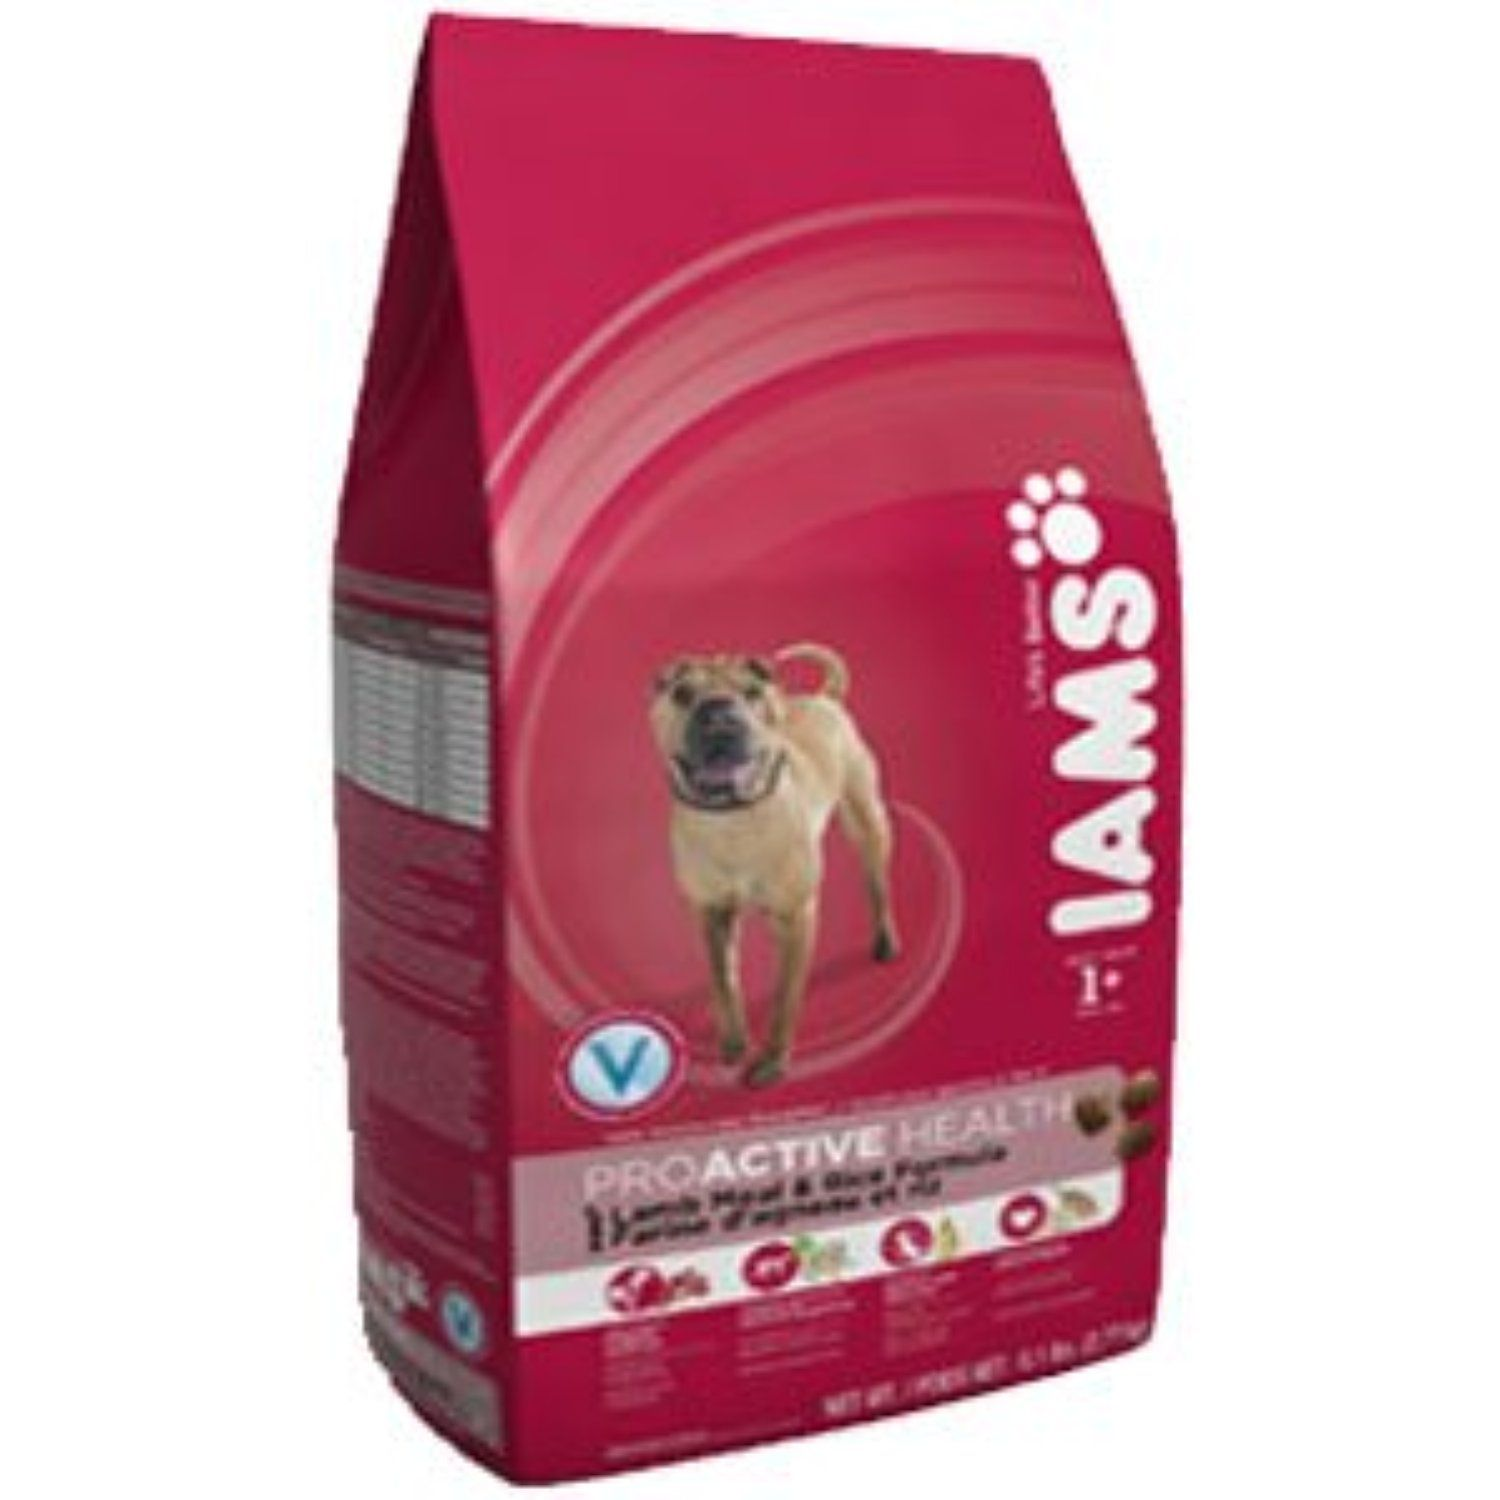 Iams Lamb And Rice Dog Food You Can Check Out The Image By